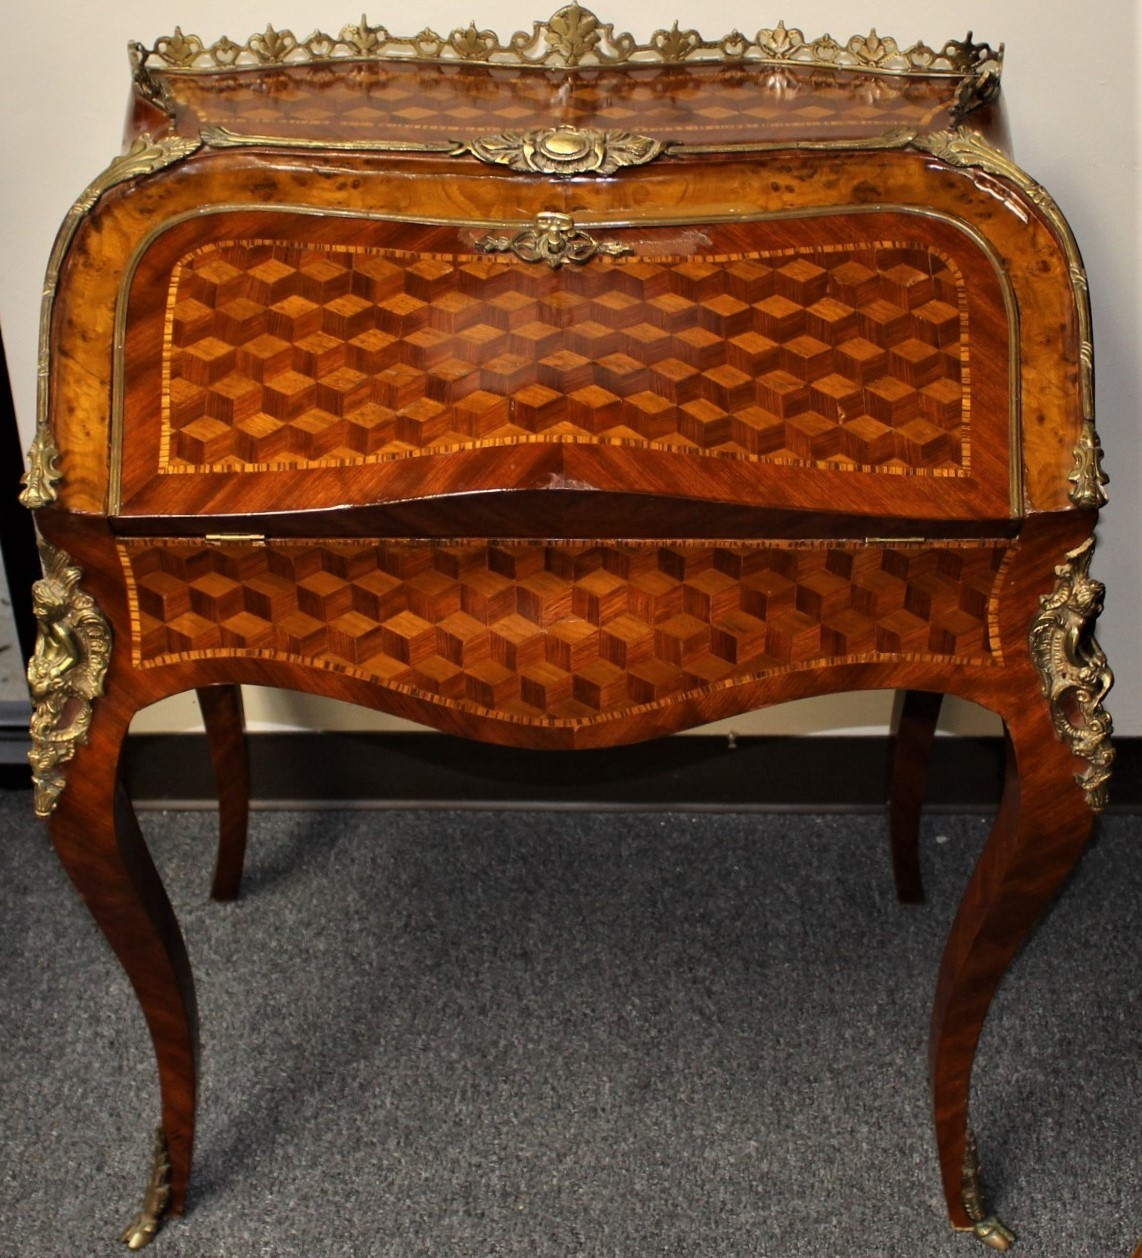 French Marquetry Inlay w/ Gilt Bronze Mounts & Leather Top Drop Down Bureau Writing Desk